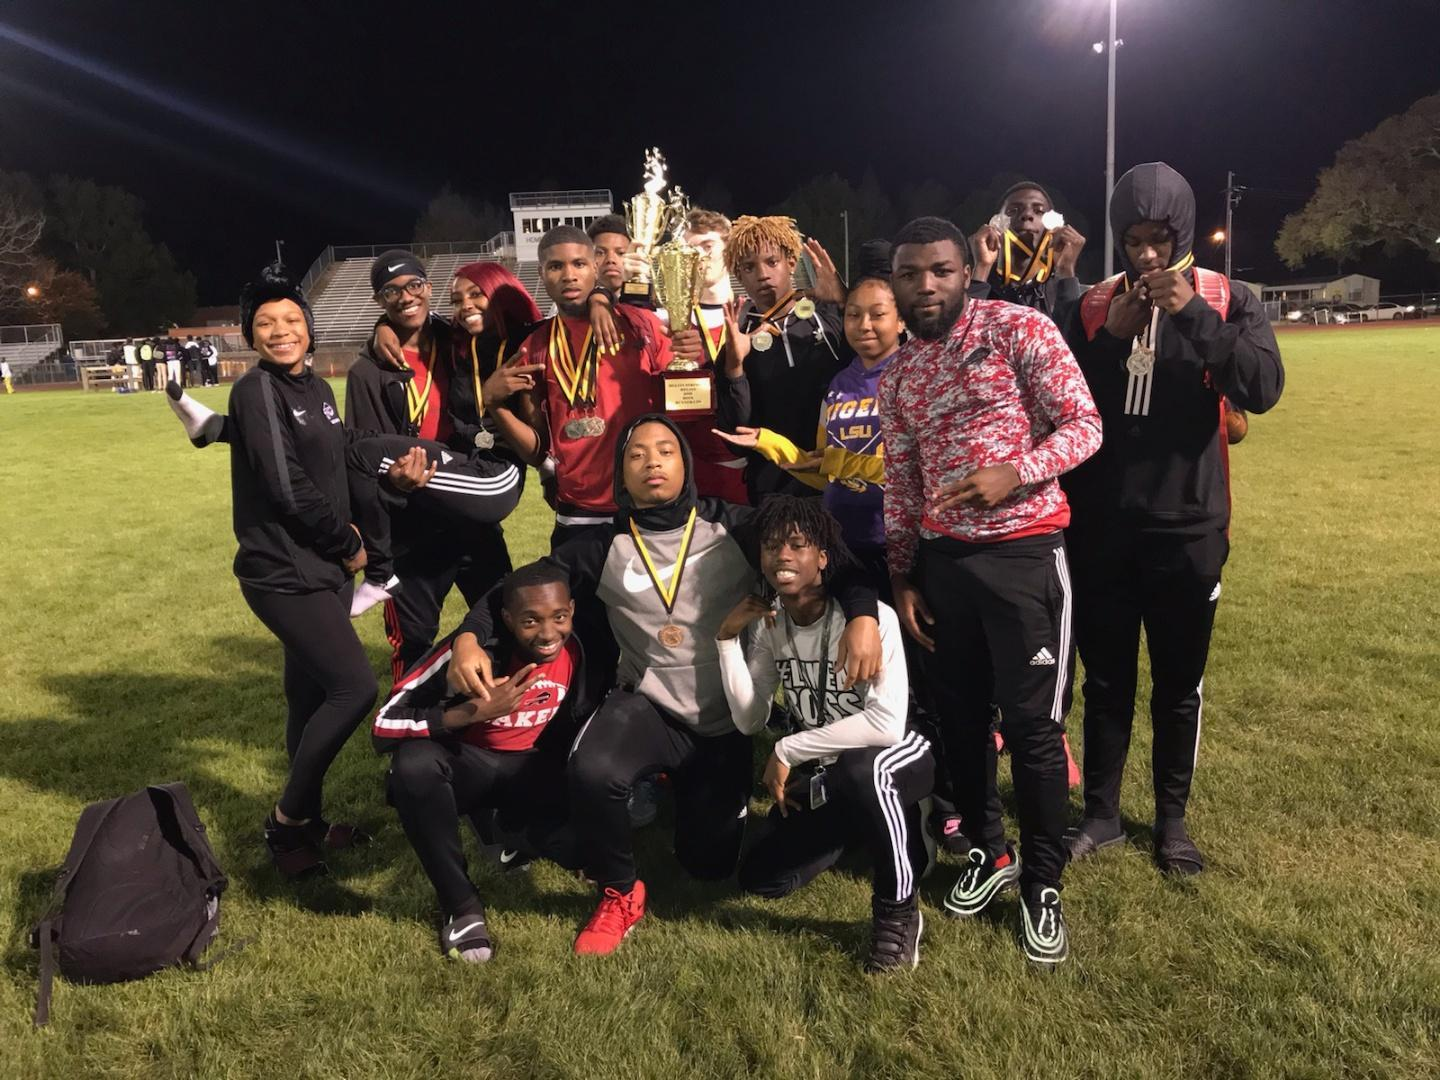 Photo of BHS Boys Track Team Trophy after win at Melvin Stringer Relays